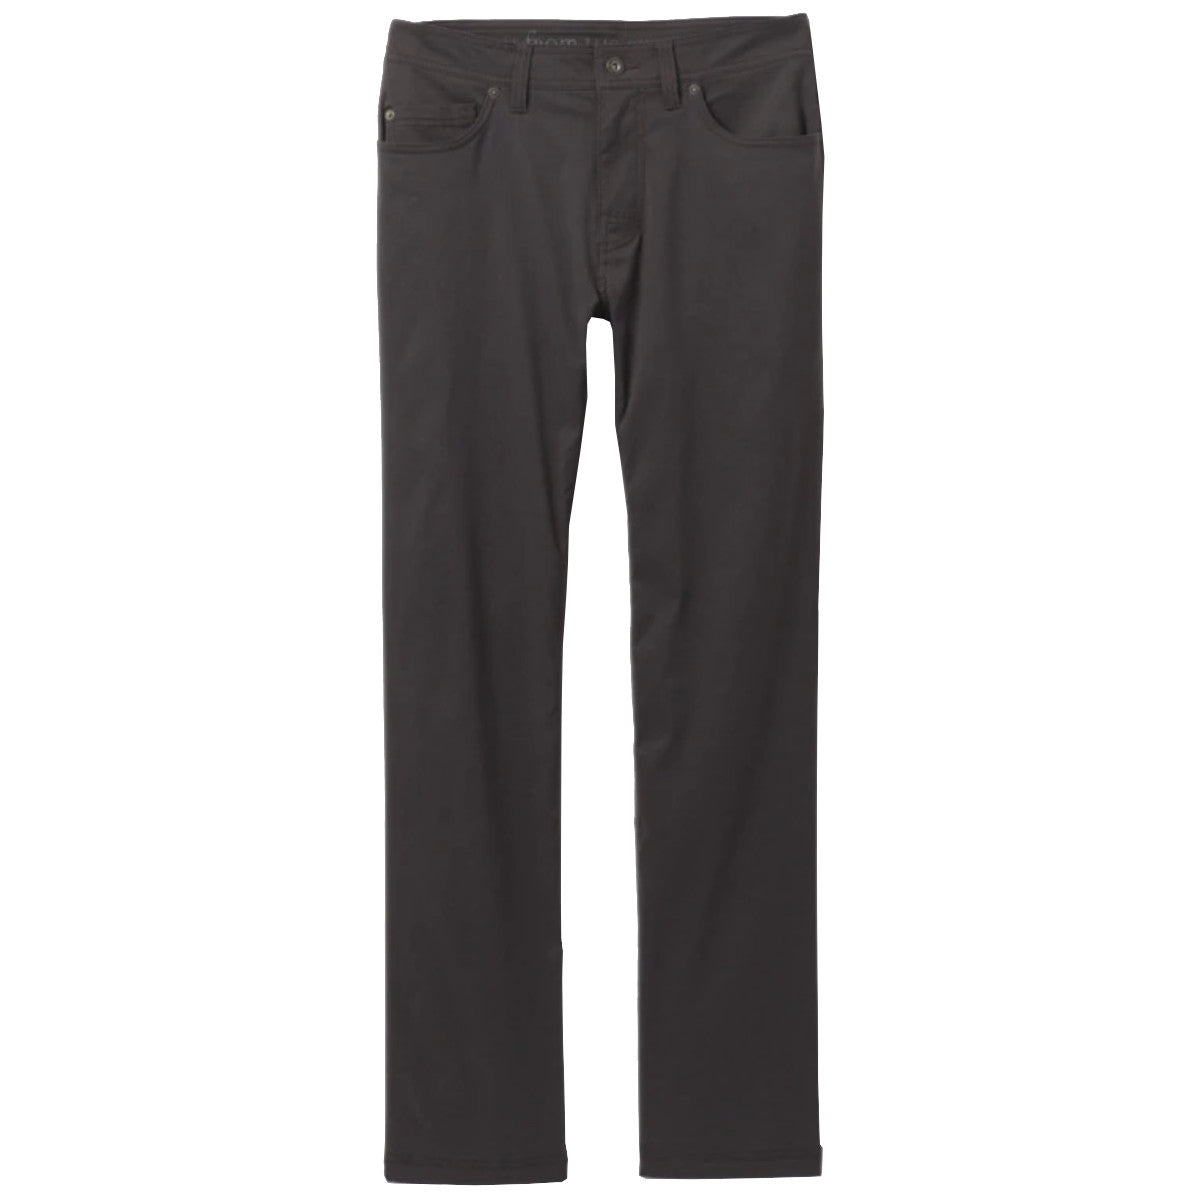 Prana Brion Pant charcoal